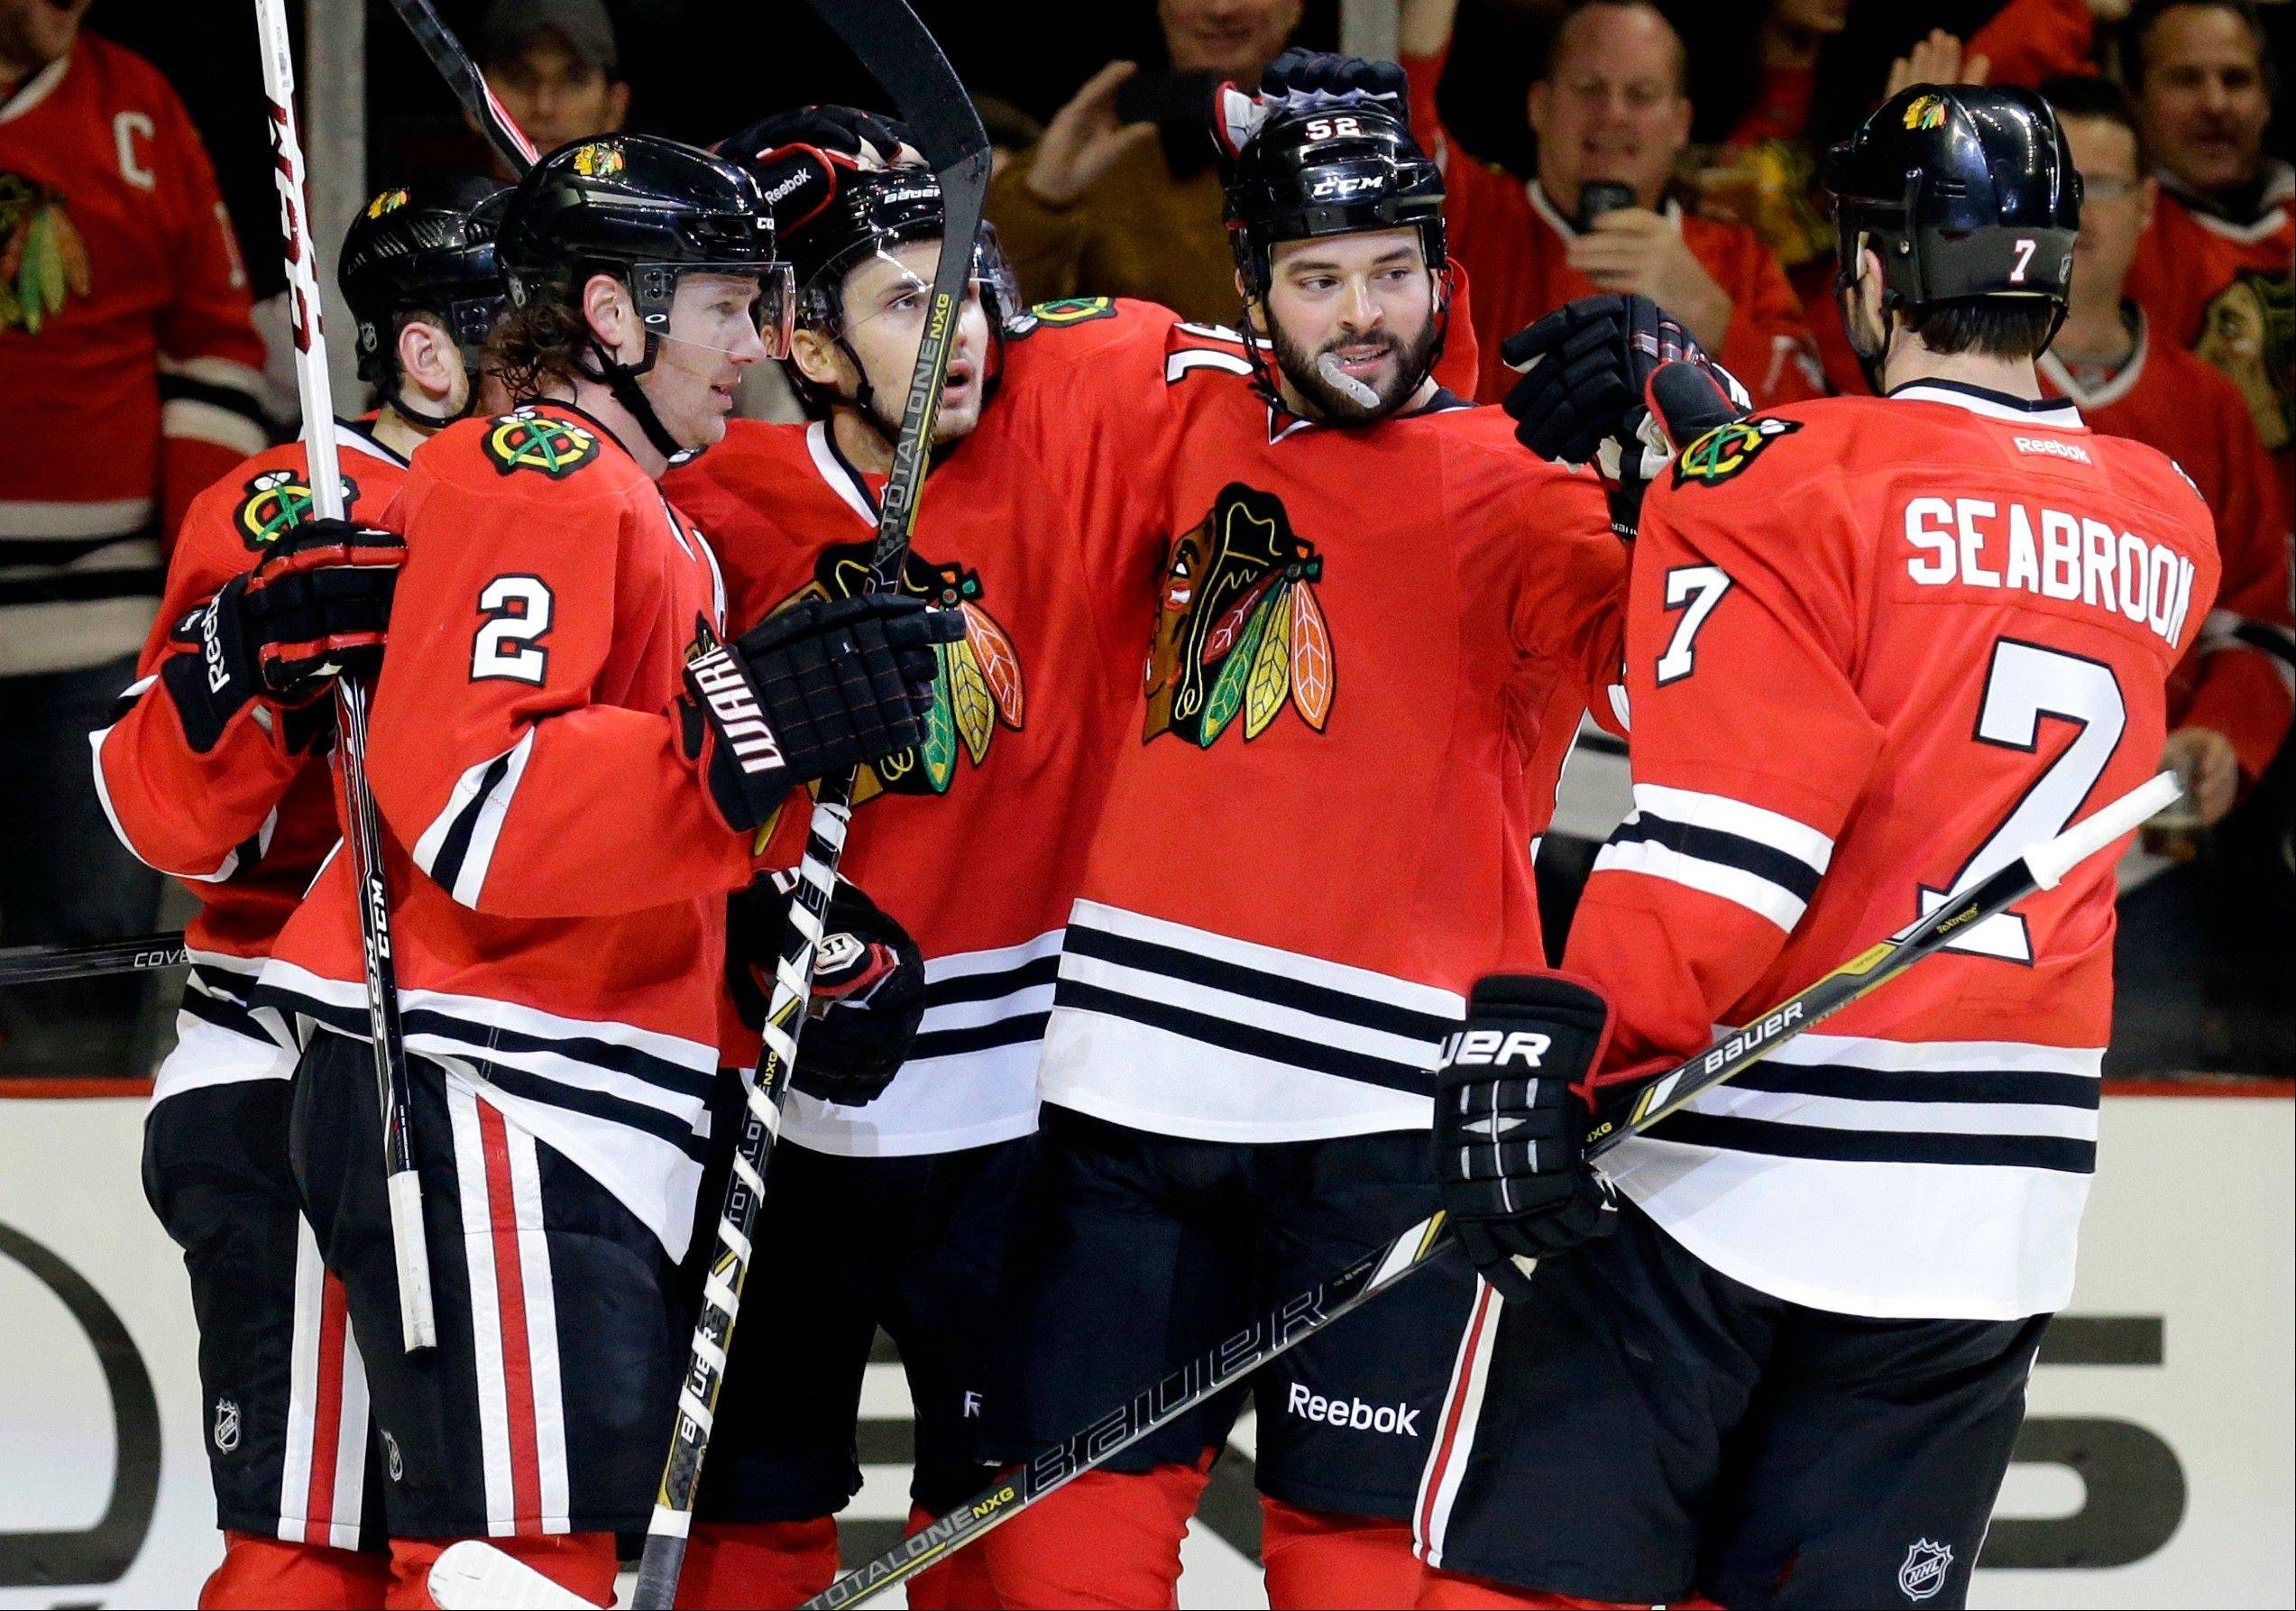 Brandon Bollig, second from right, celebrates with teammates after scoring a goal in Sunday�s victory over Boston. Bollig says the Hawks are excited about Wednesday night�s meeting with the Red Wings at Detroit.